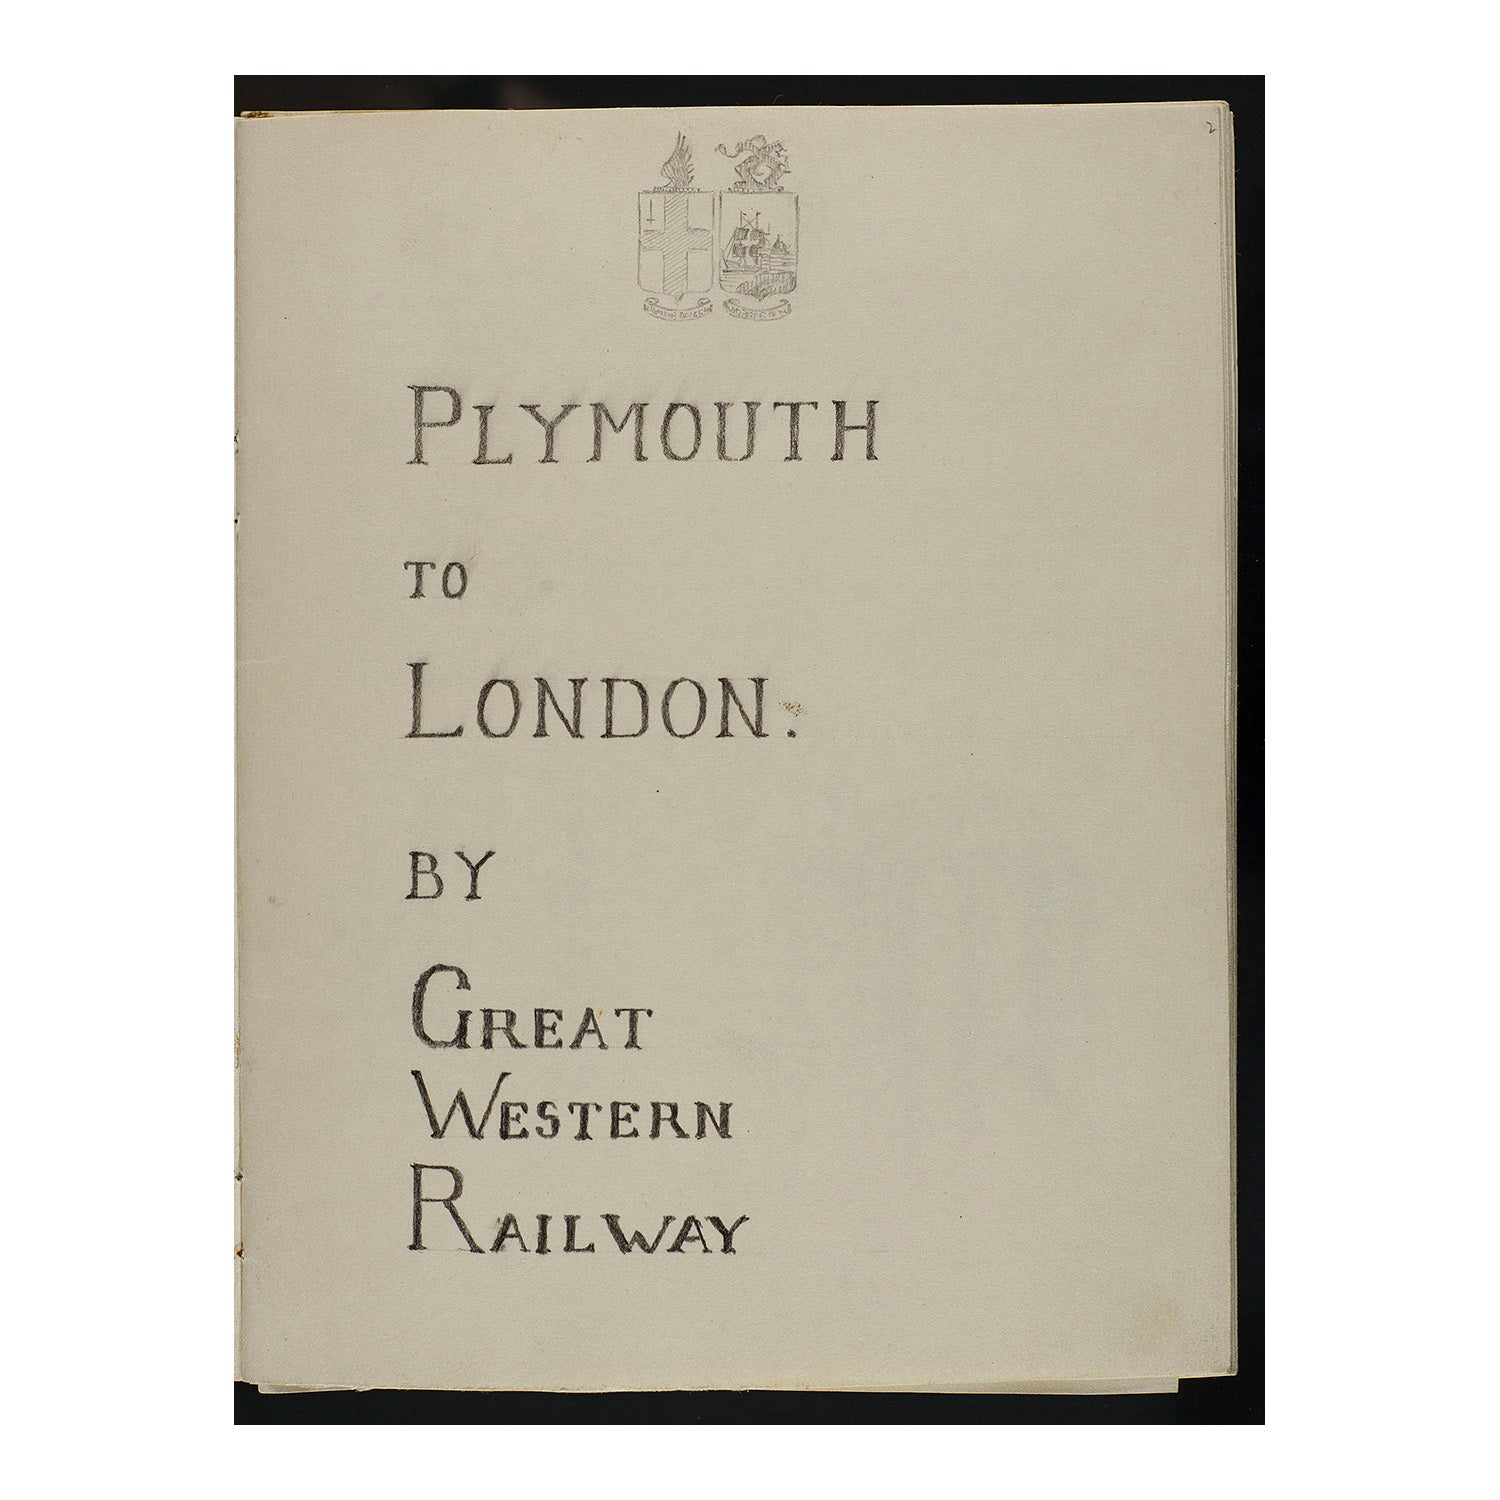 Original Great Western Railway artwork mock-up of 'Plymouth' publication